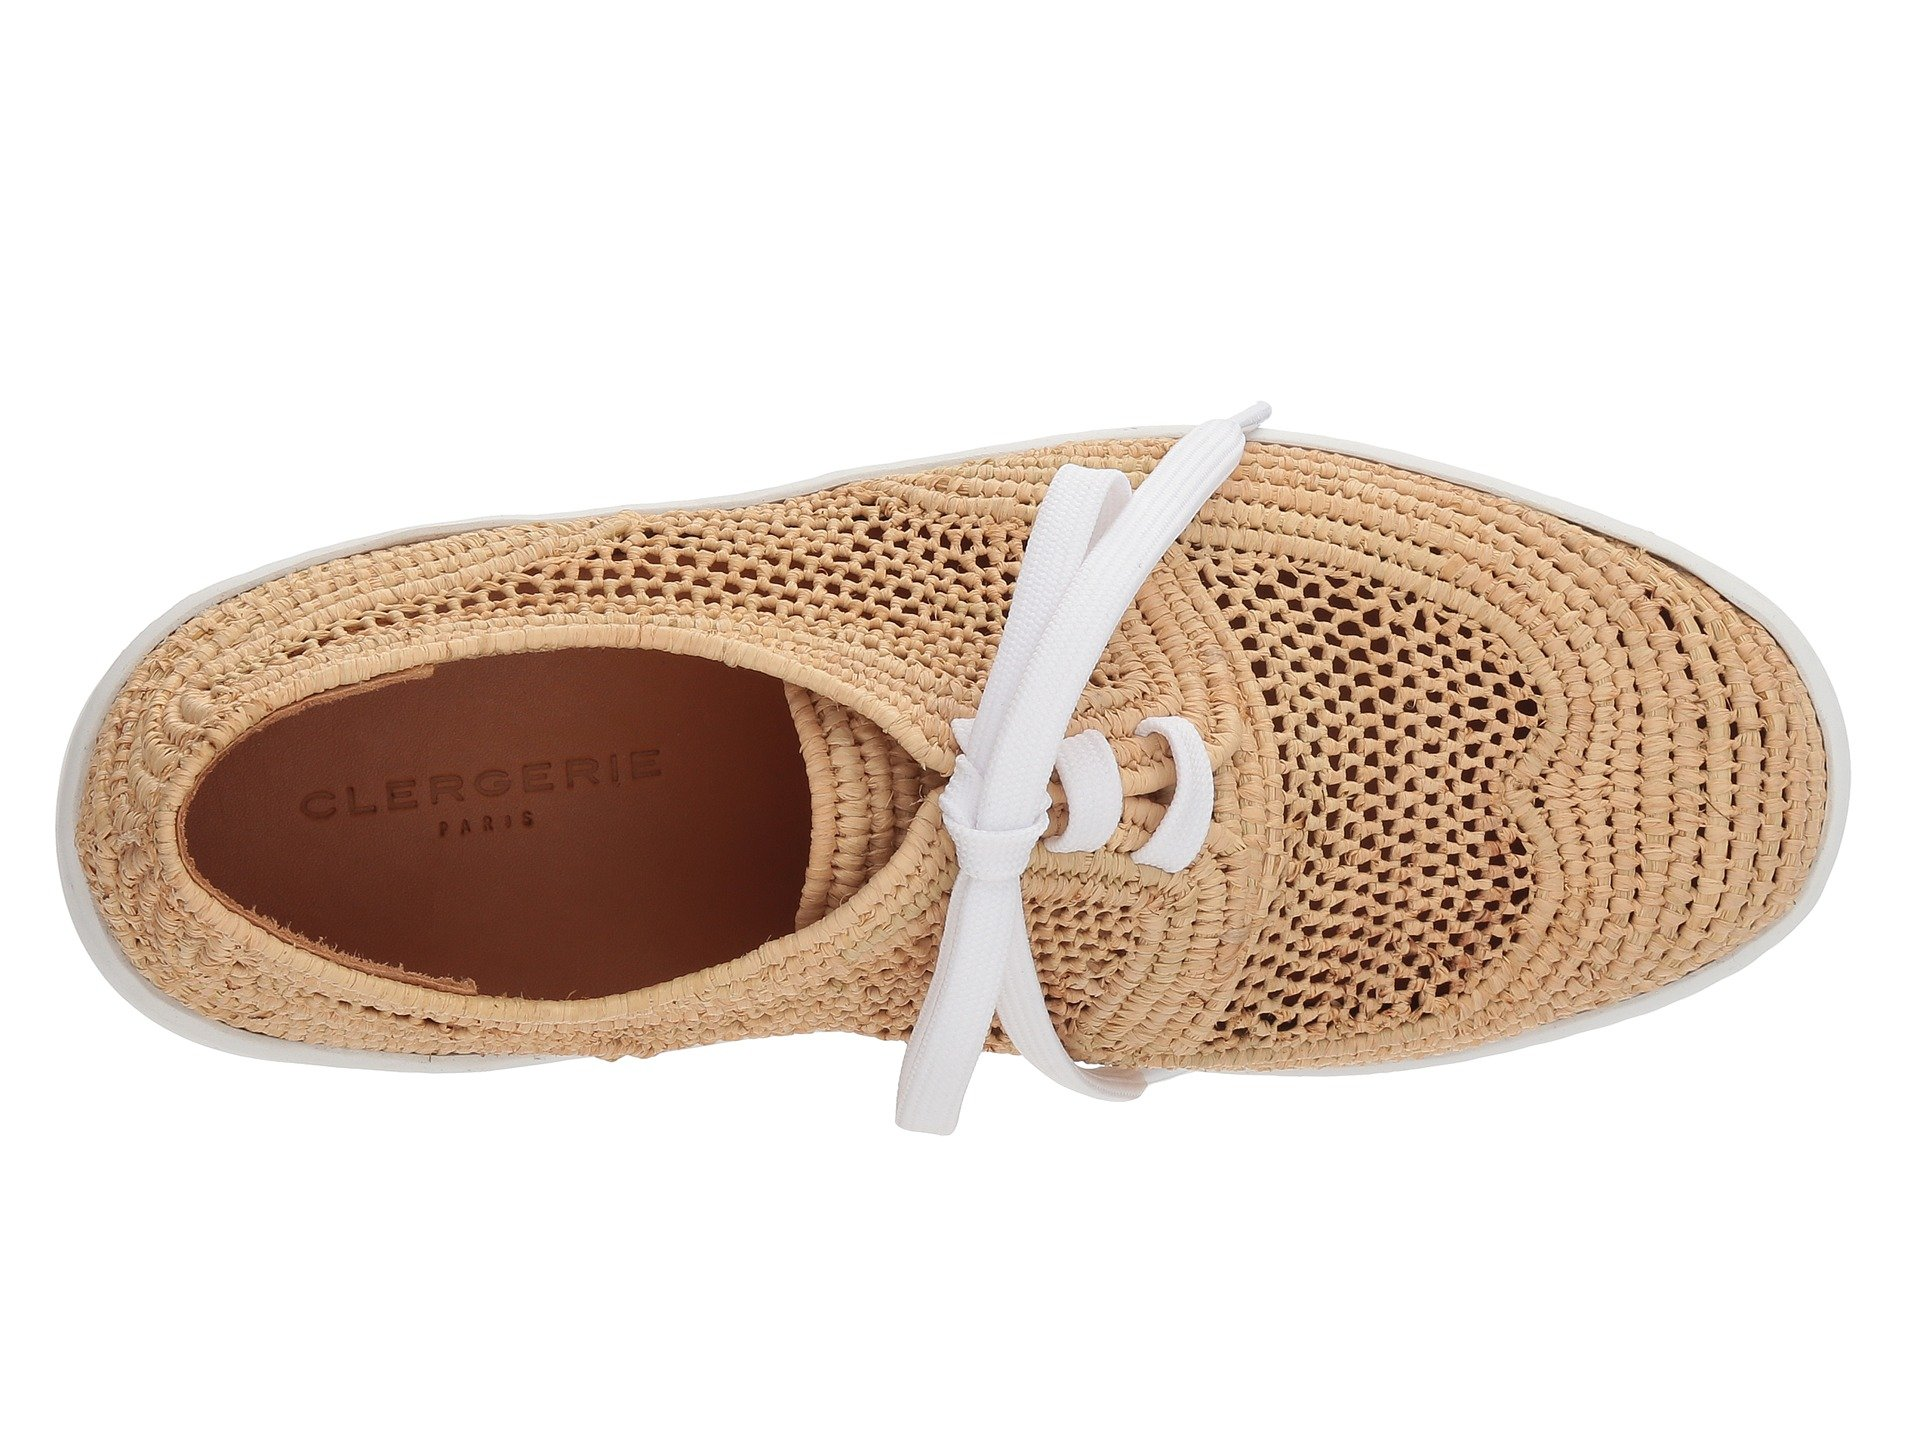 Natural Taille Raffia Clergerie Clergerie Taille tR0qnx4Y